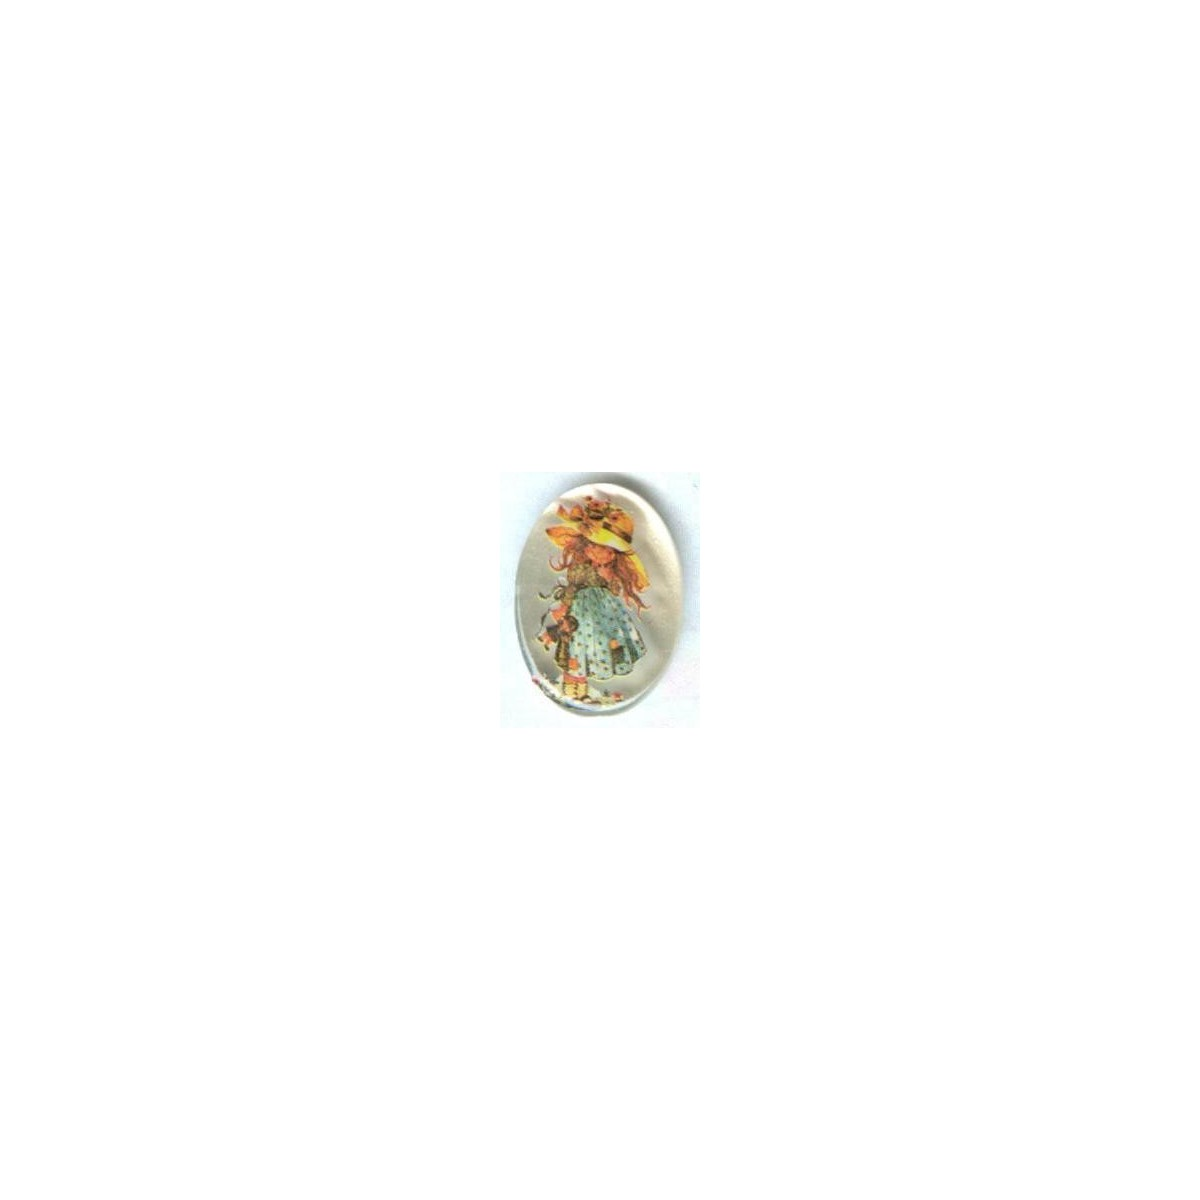 Vintage Holly Hobbie Frosted Cabochon 18x13mm